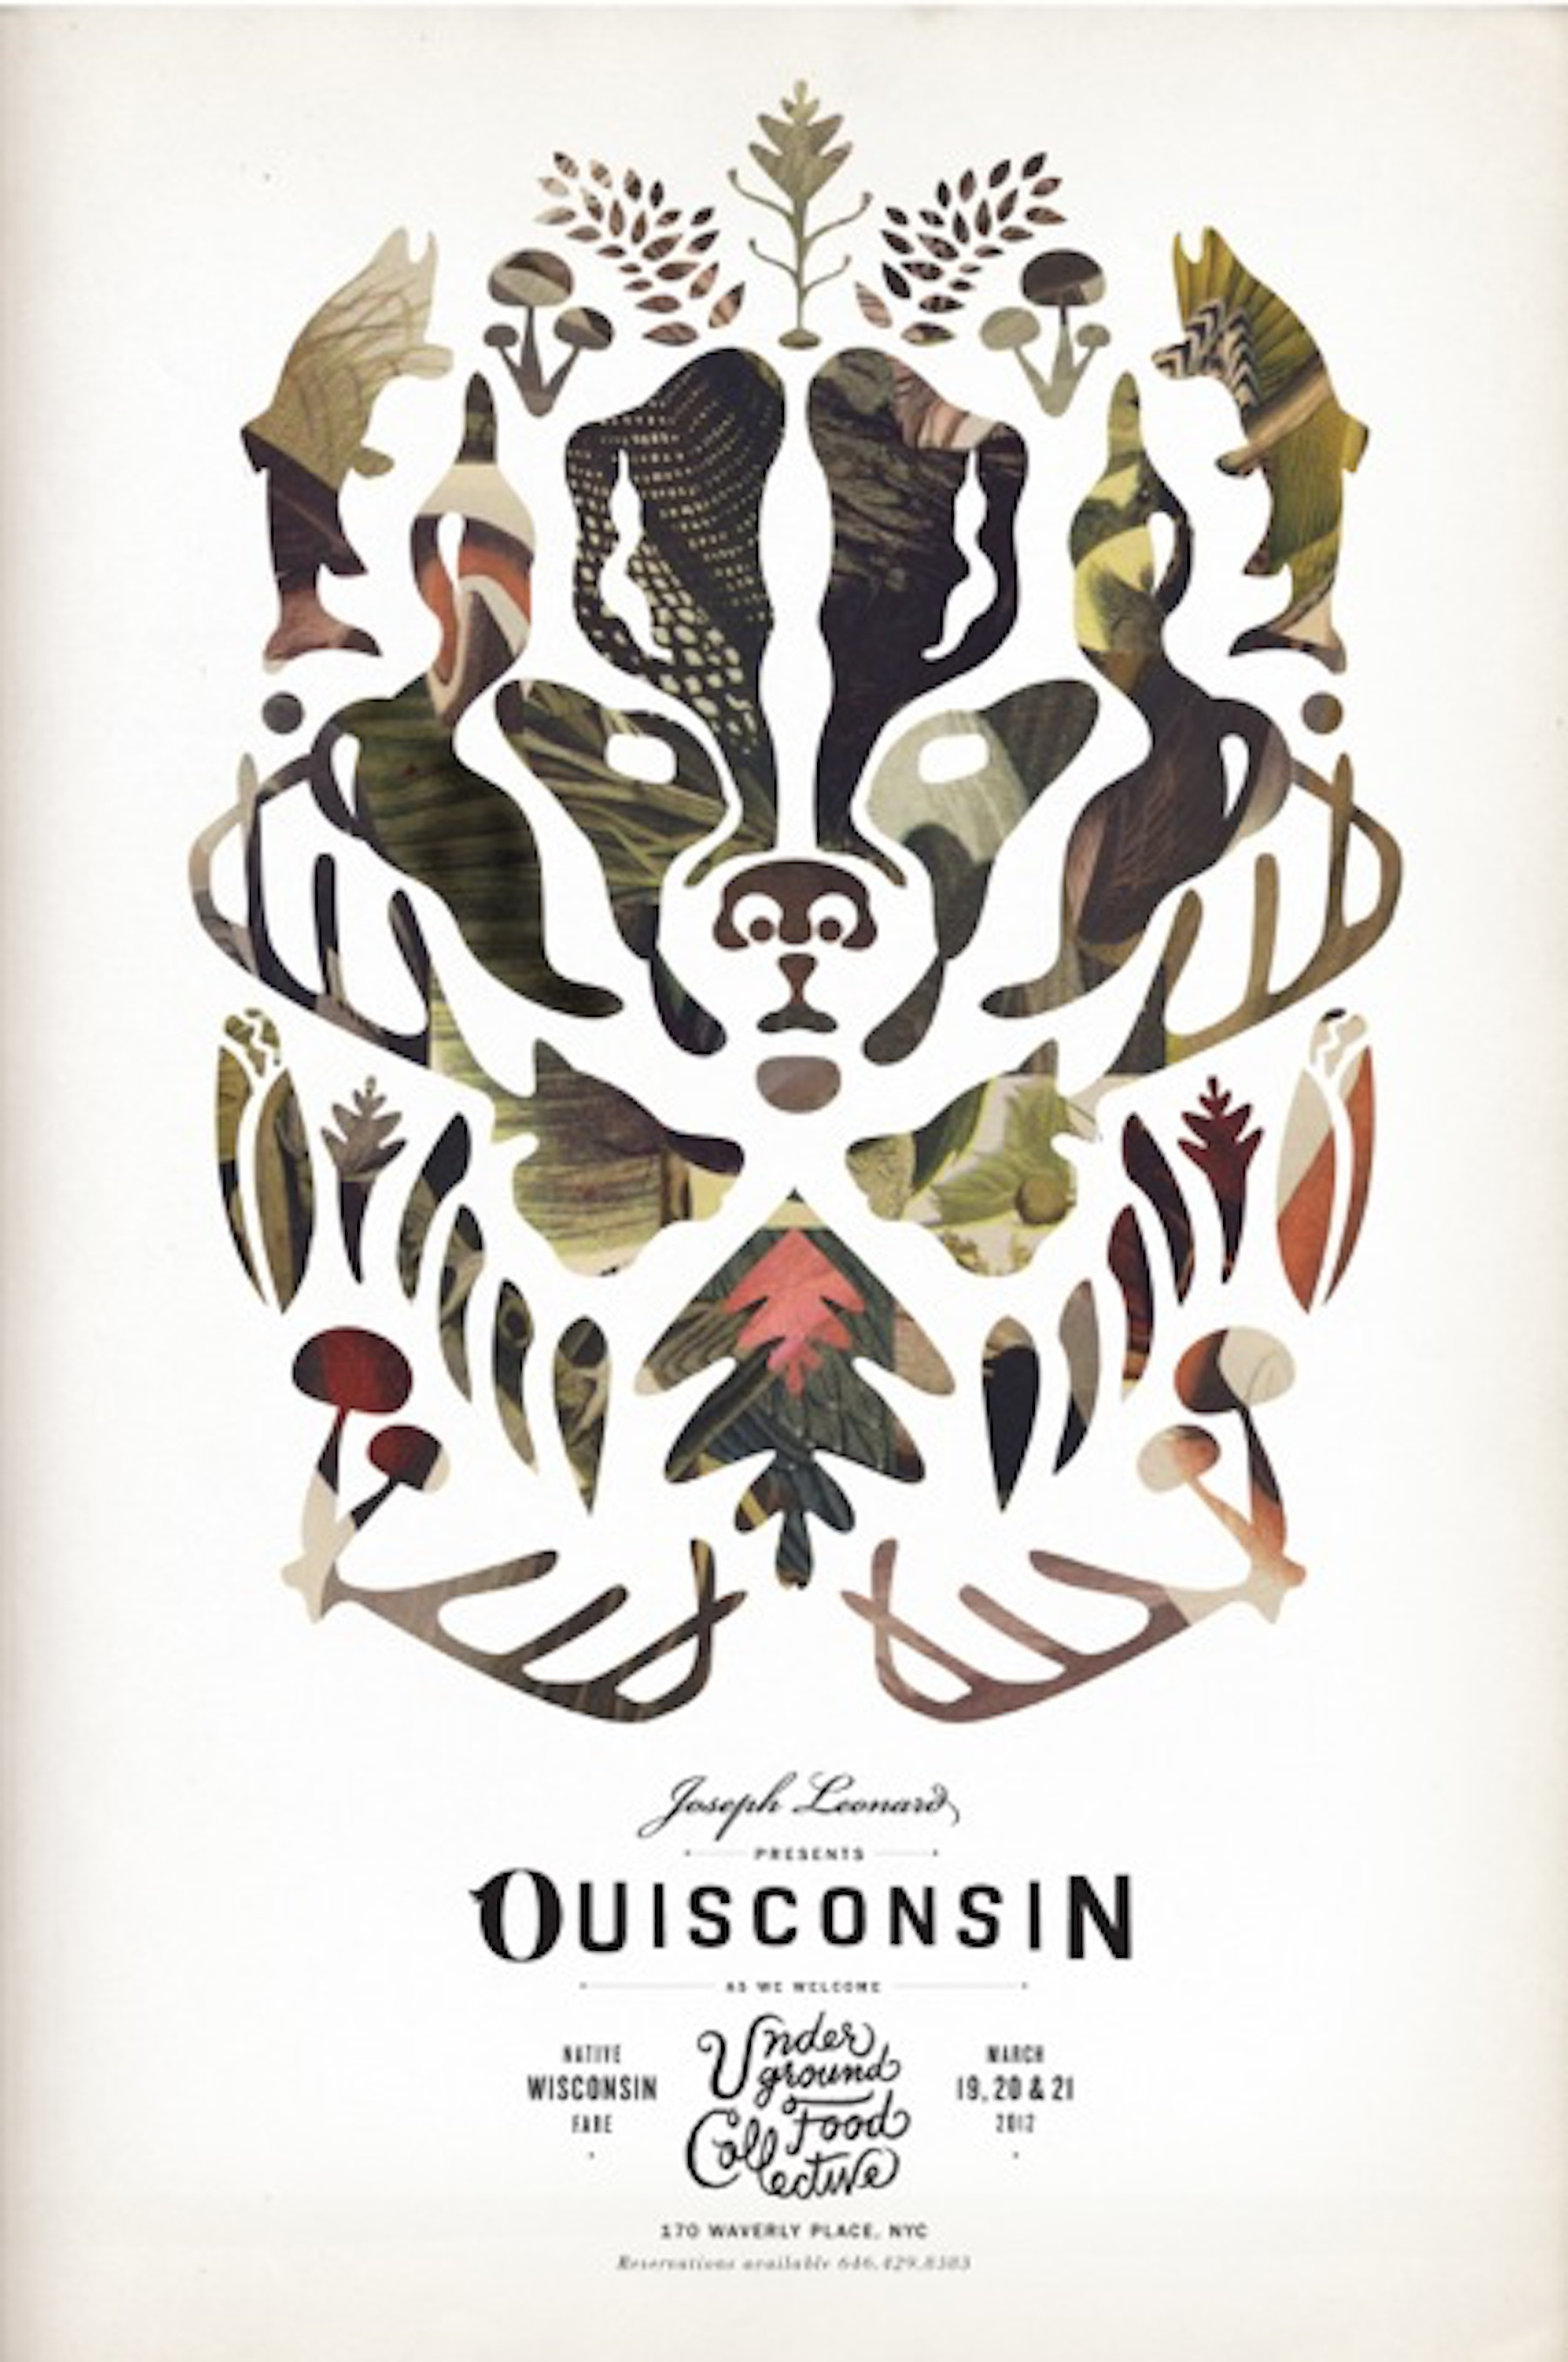 Ouisconsin